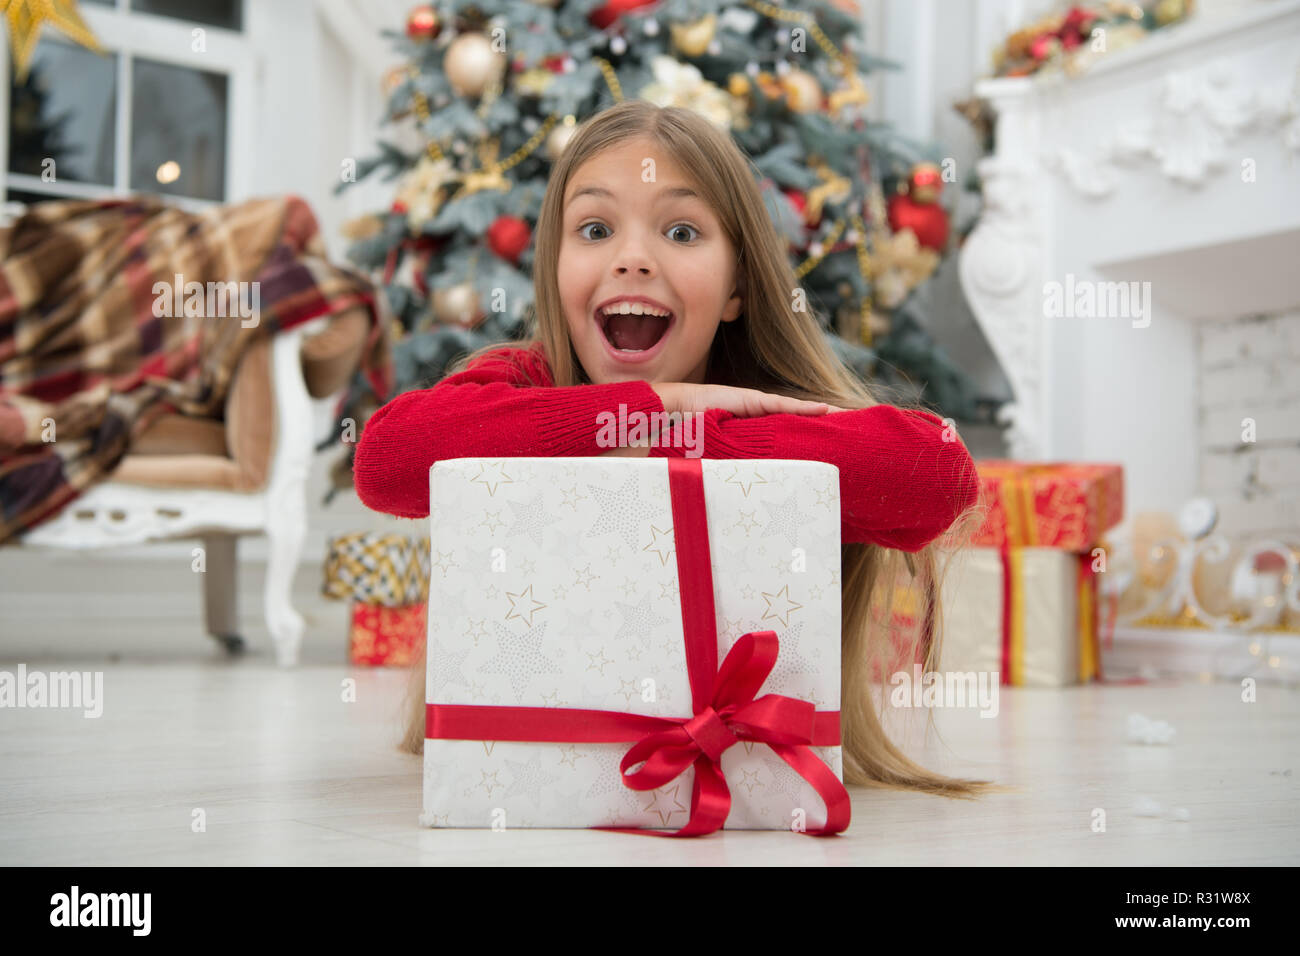 Christmas is coming. Small cute girl received holiday gift. Best christmas gifts. Kid little girl in elegant dress and gift box christmas tree background.  sc 1 st  Alamy & Christmas is coming. Small cute girl received holiday gift. Best ...